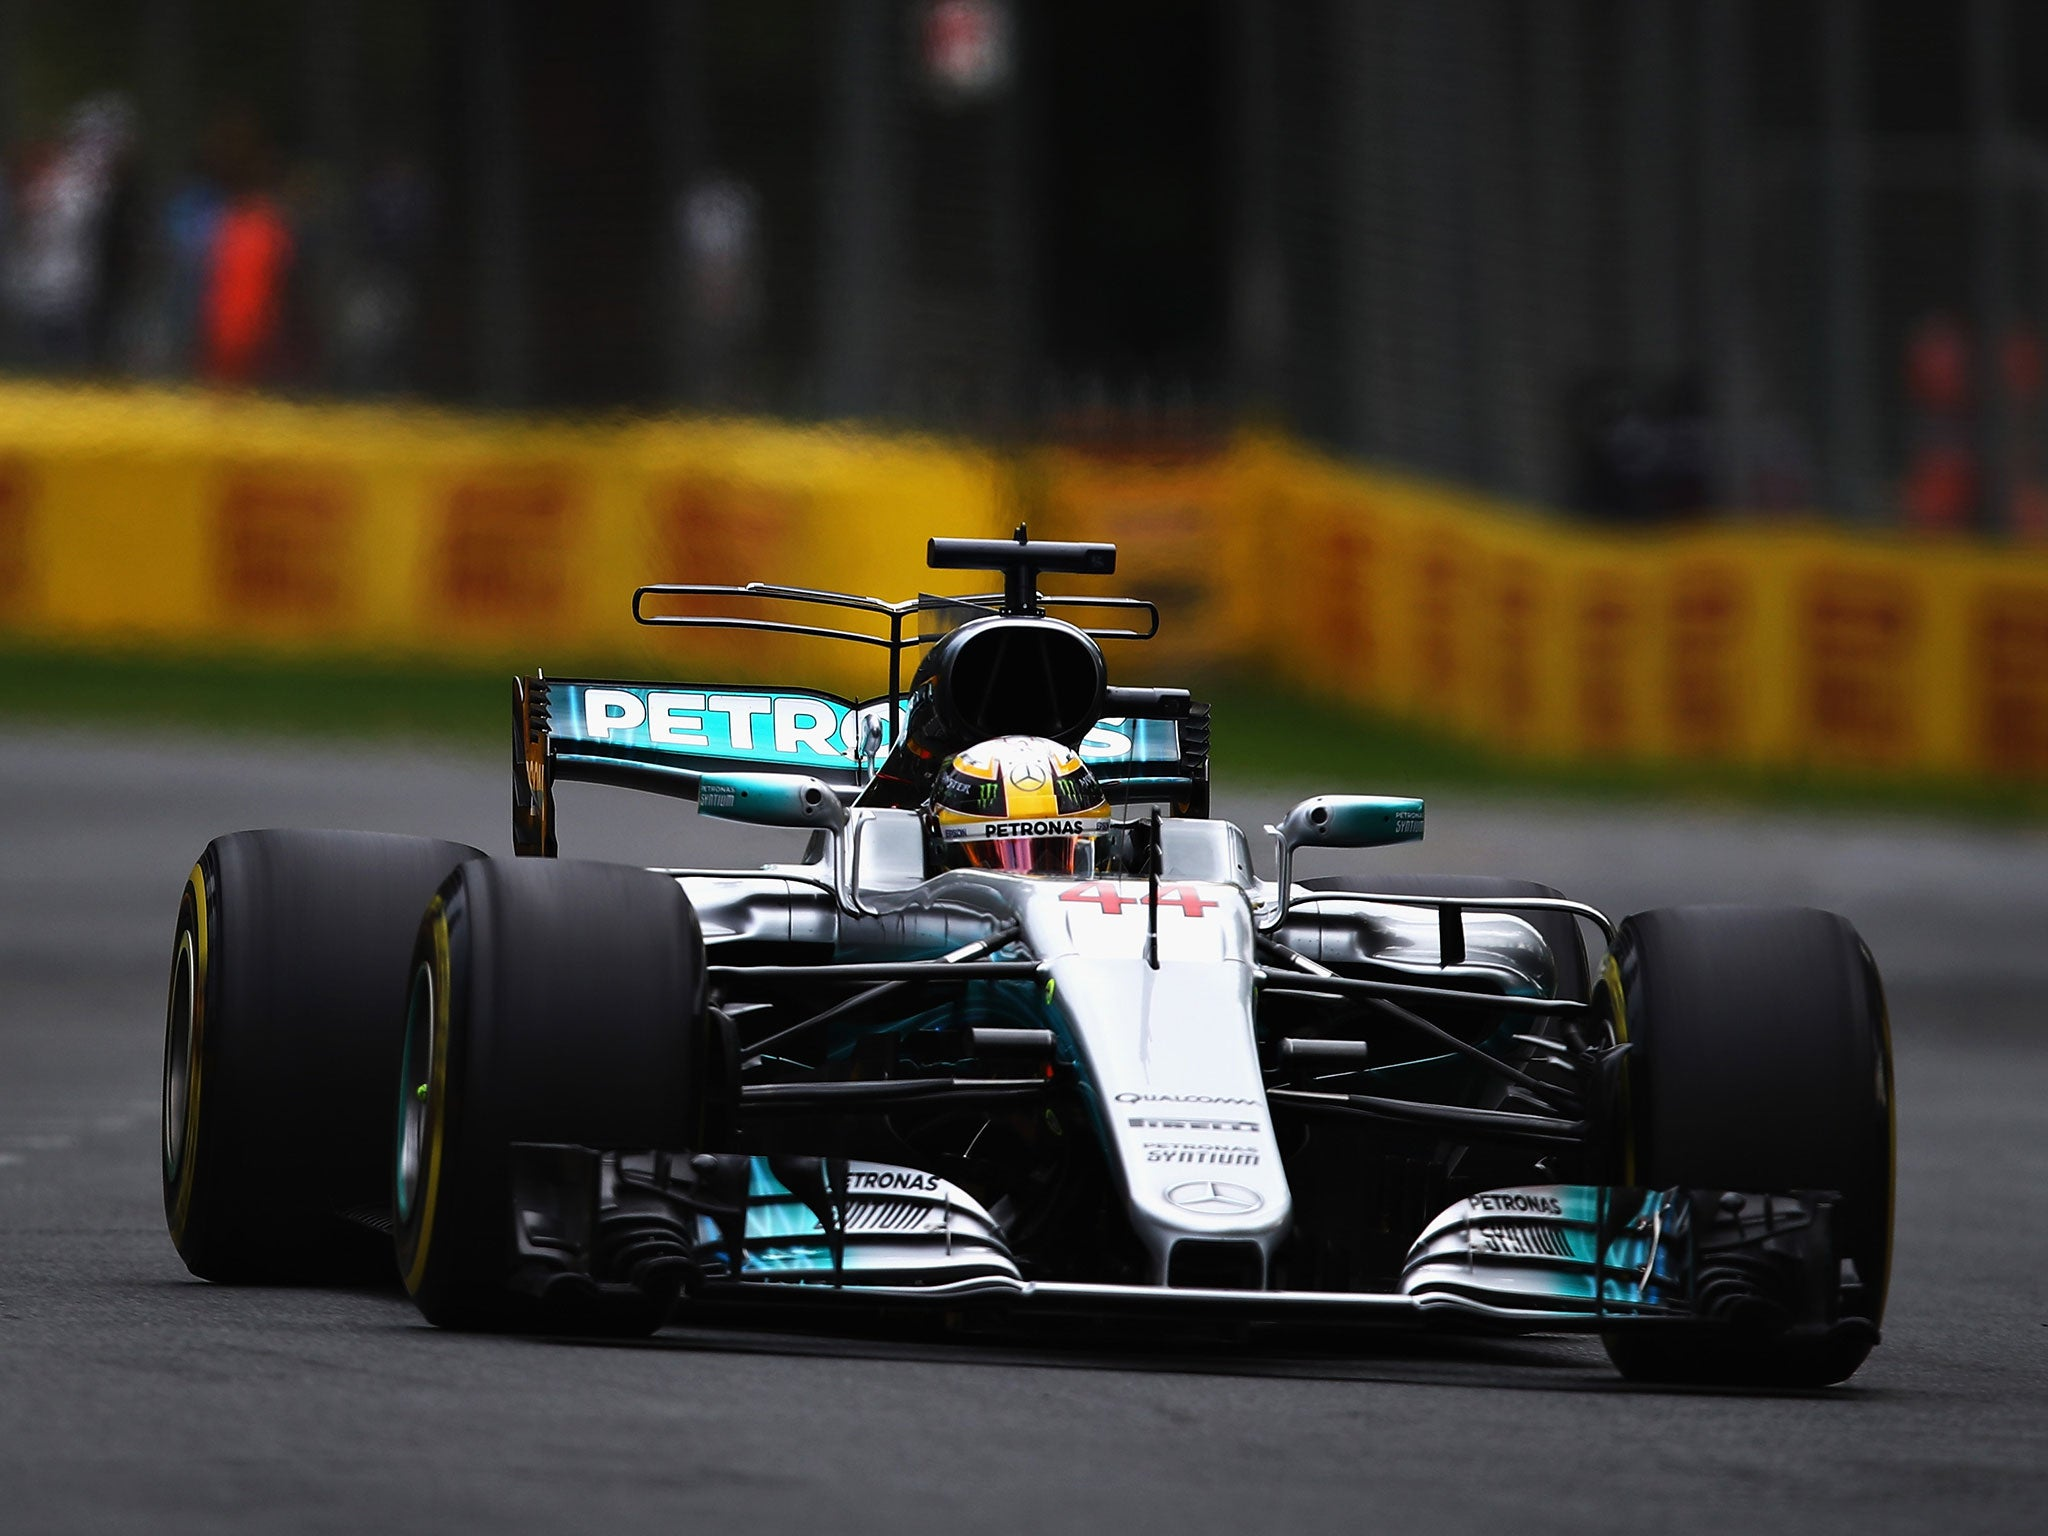 Lewis Hamilton Heads Australian Gp Practice By Half A Second Over